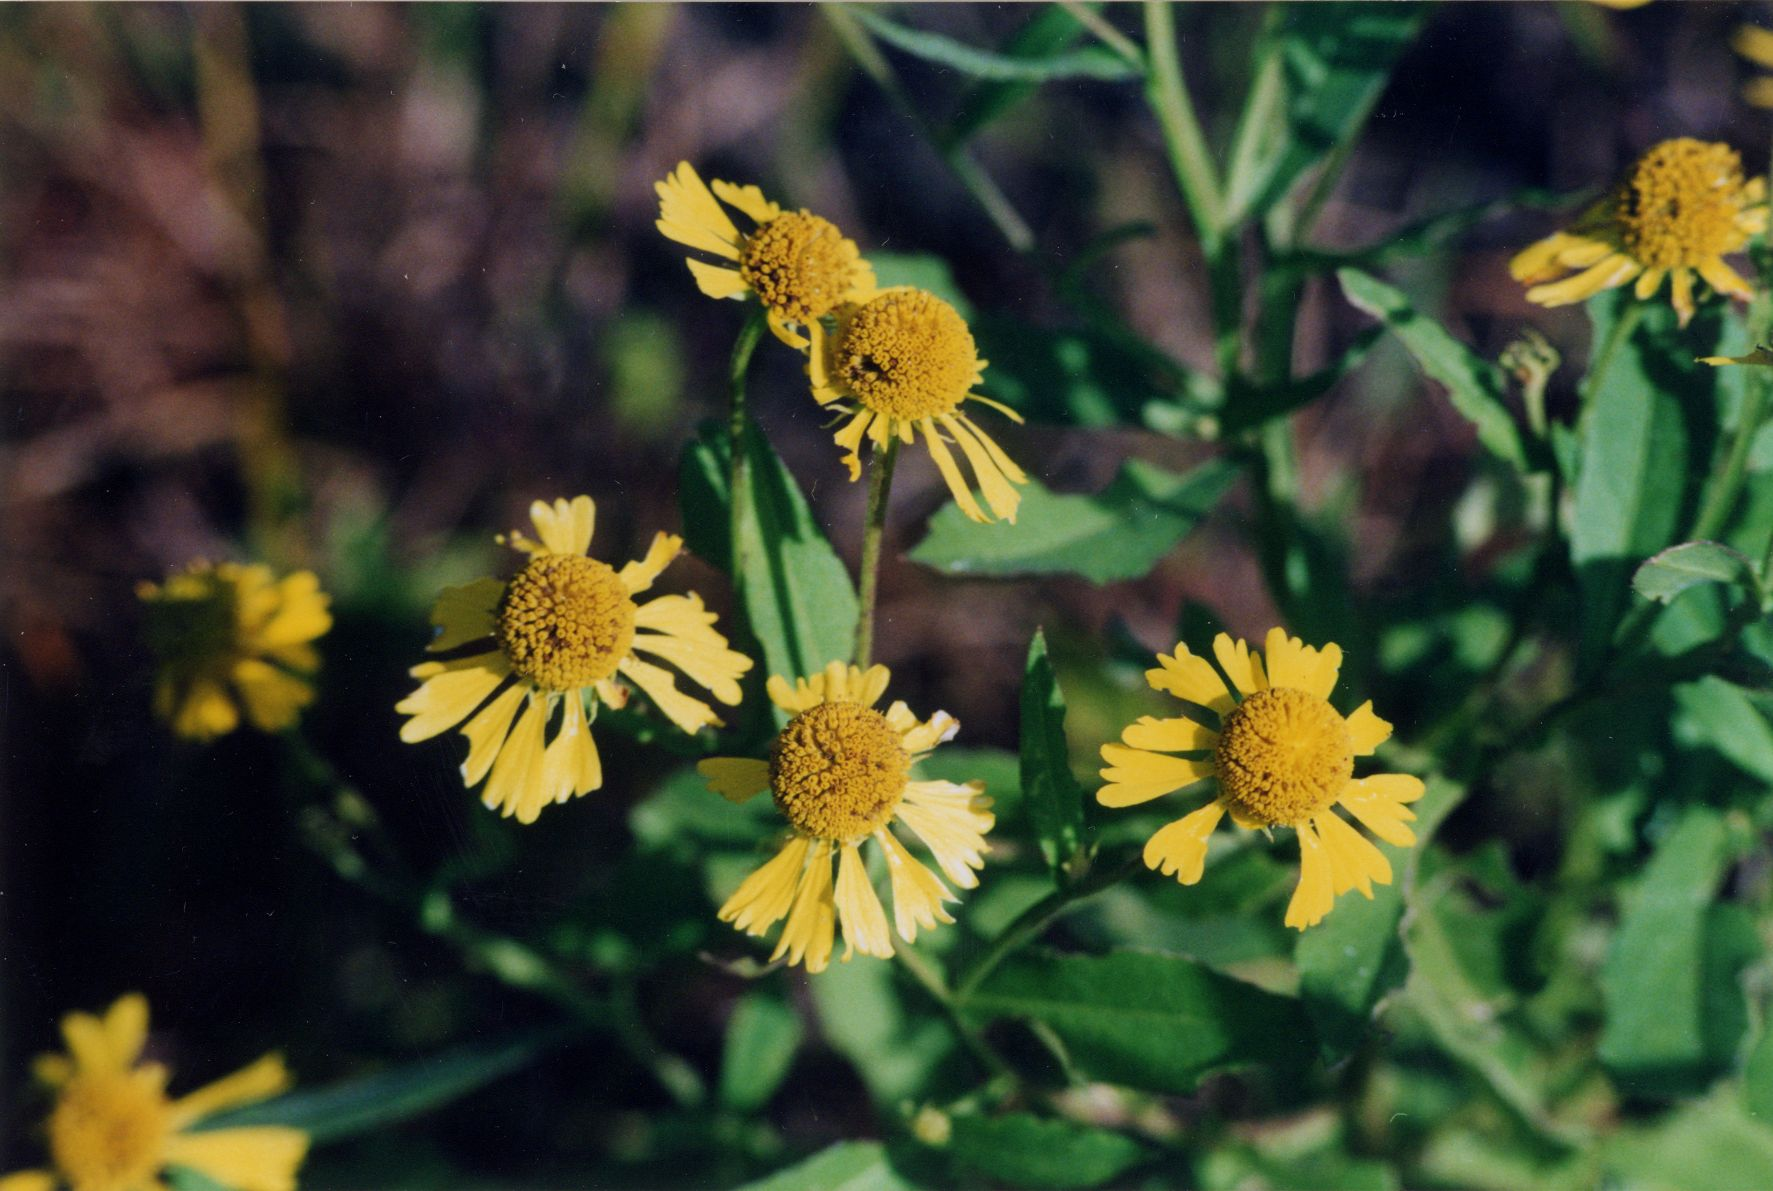 List of western pa natives audubon society of western pa also called common sneezeweed daisy like yellow flowers with squared off edges bloom on stout stems in late summer height 3 5 sun to part sun mightylinksfo